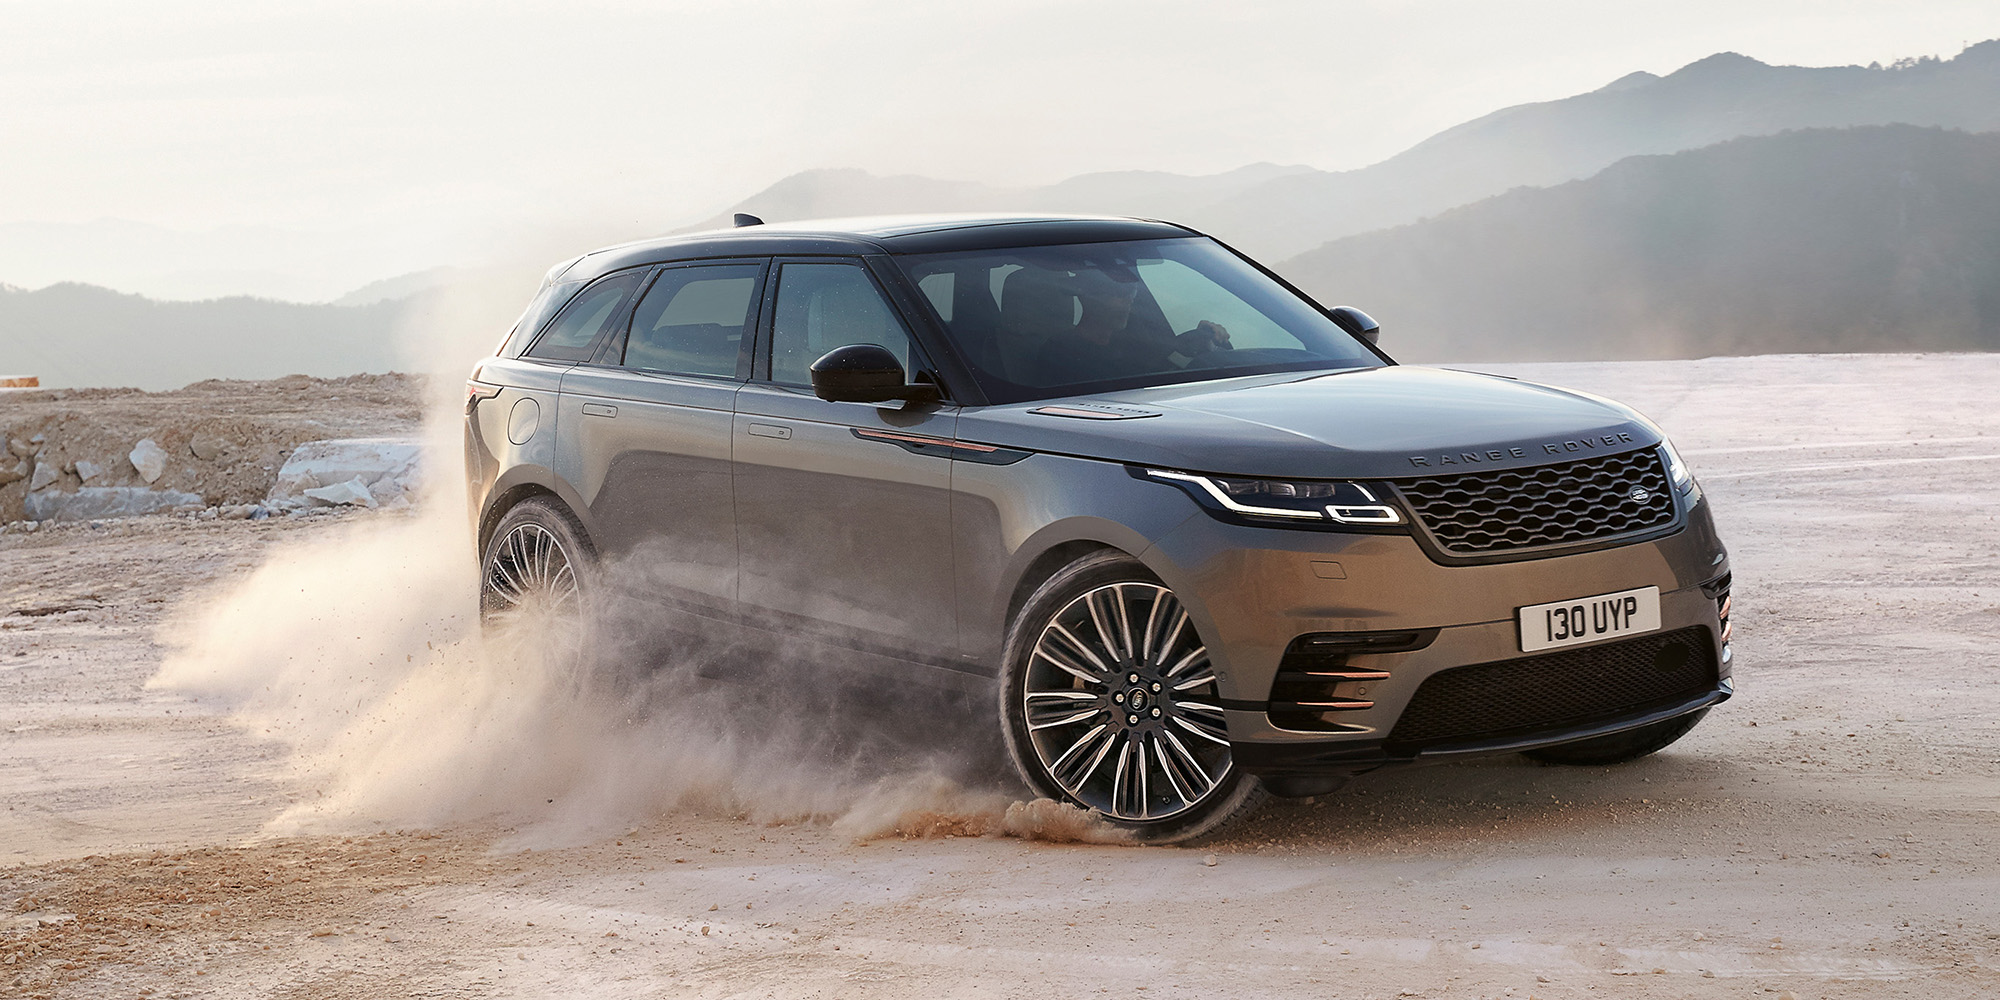 2018 Range Rover Velar goes official, Australian pricing